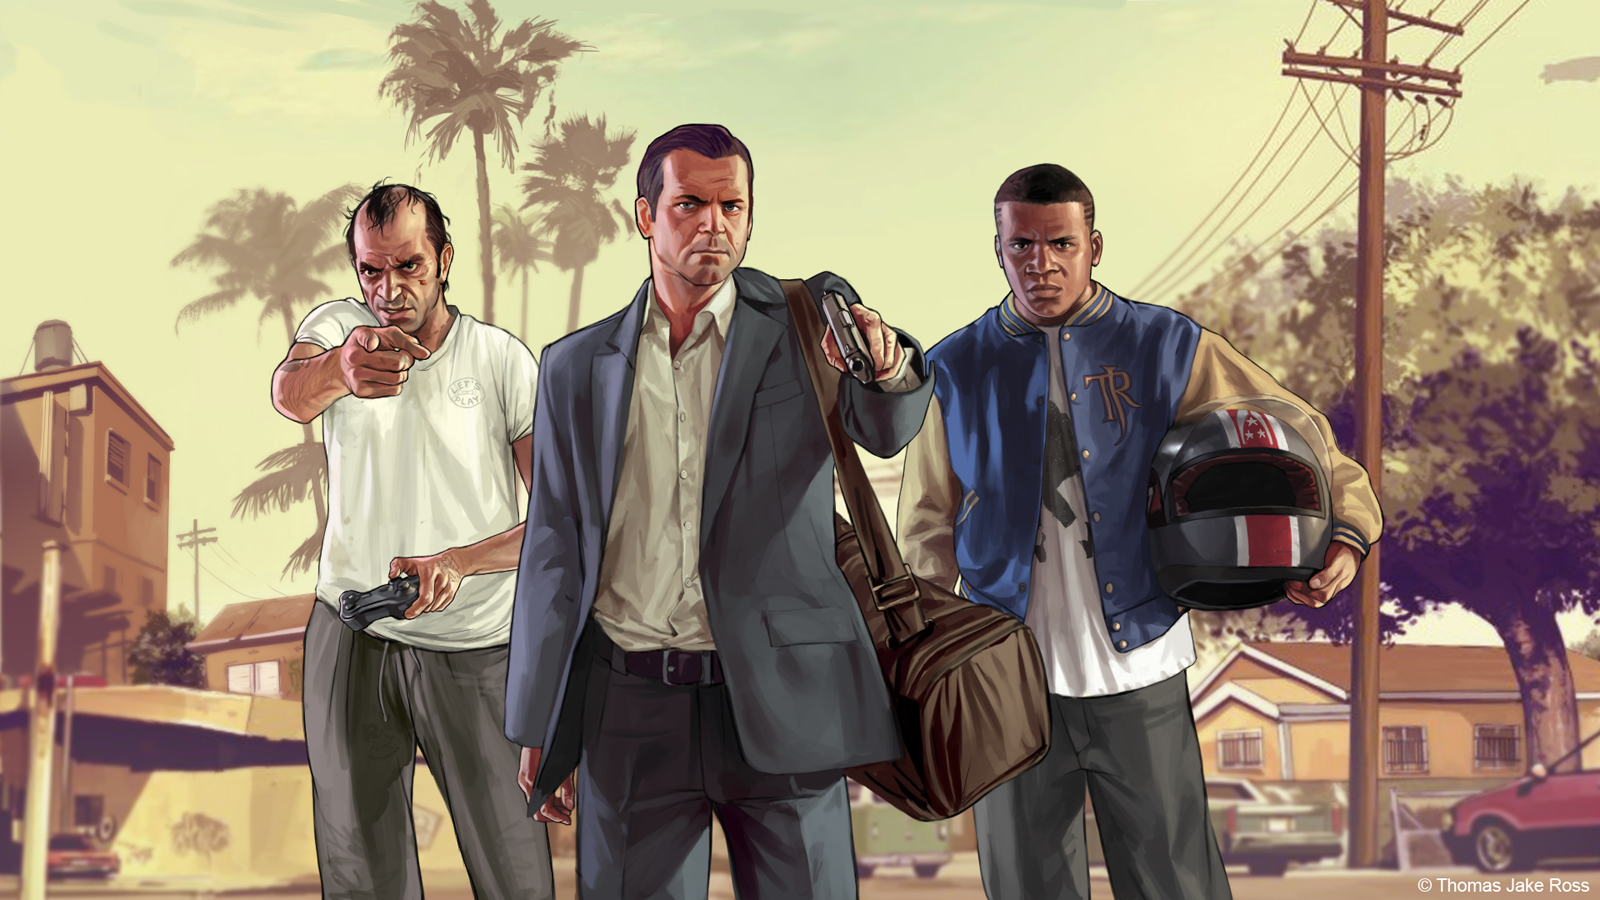 grand_theft_auto_5_by_thomasjakeross-d6n